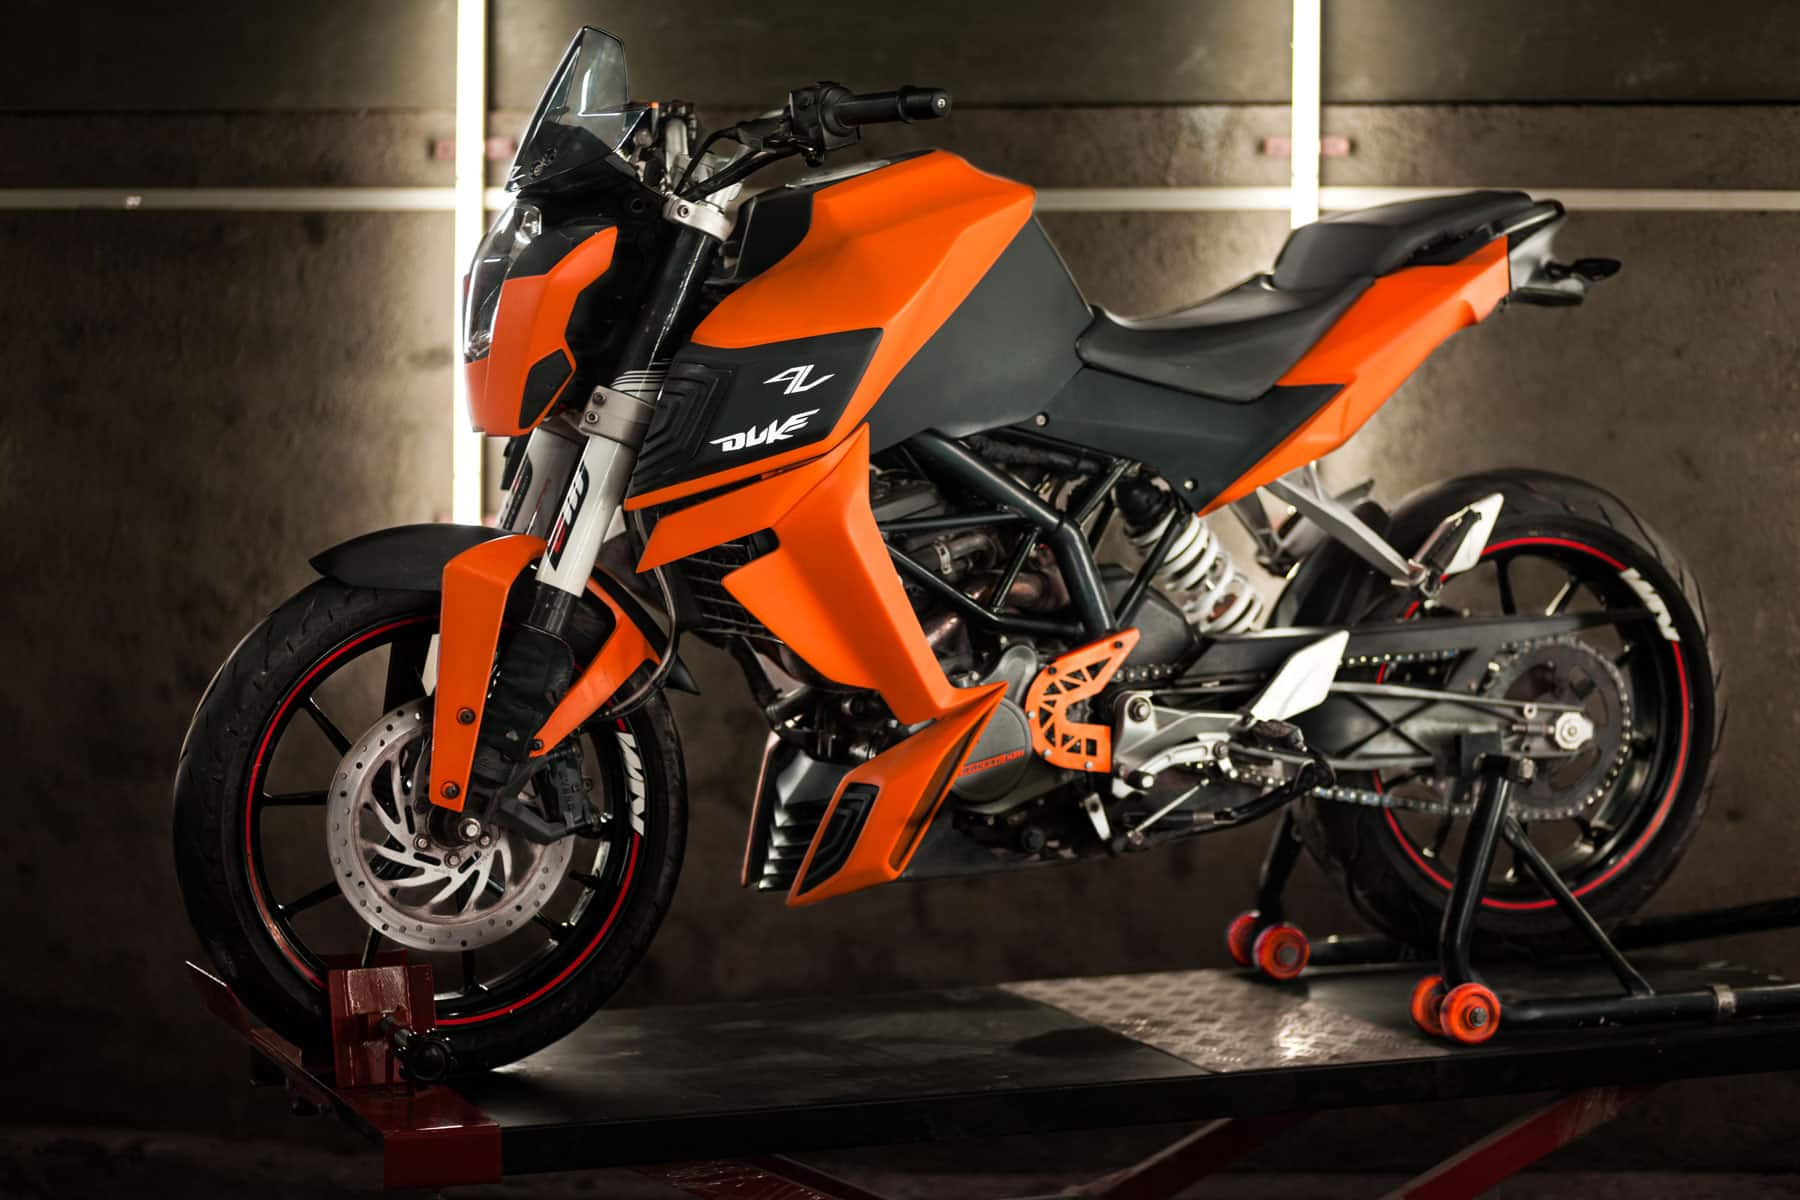 ICustomMadeIt introduces modification kits for the KTM Duke siblings